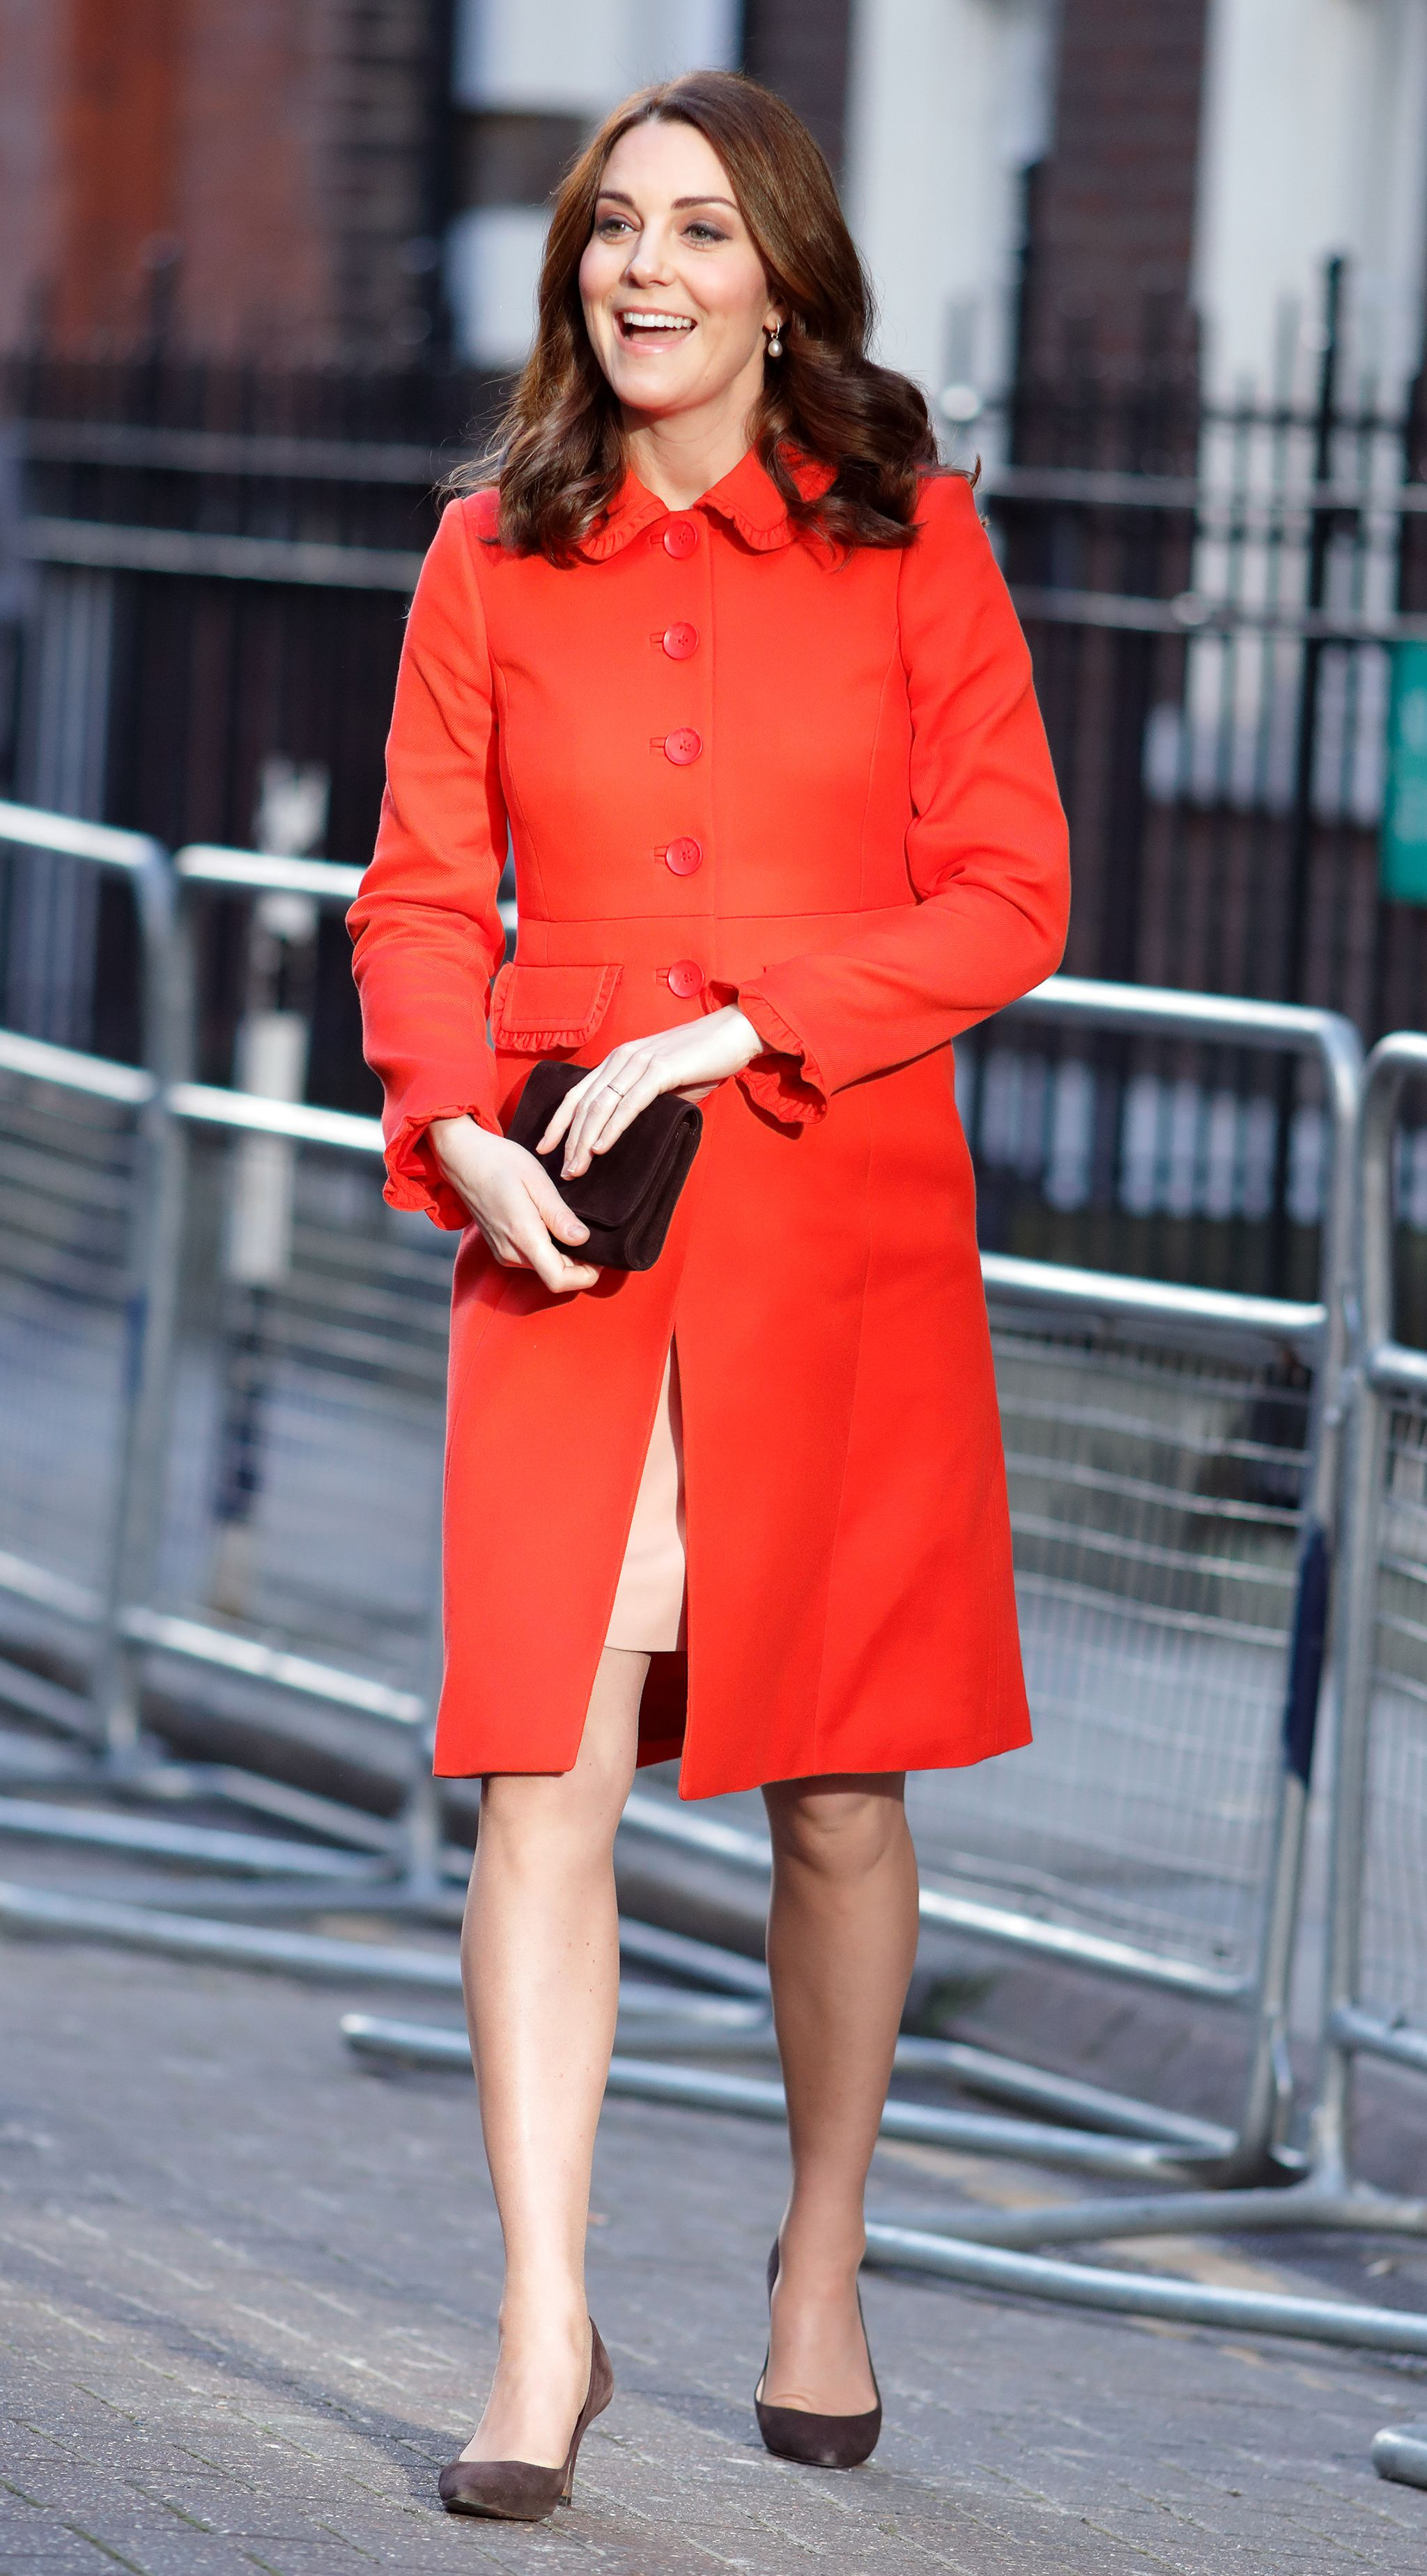 a41cfbe6c262 Kate Middleton Baby Bump Photos - Kate Middleton Maternity Style Pictures